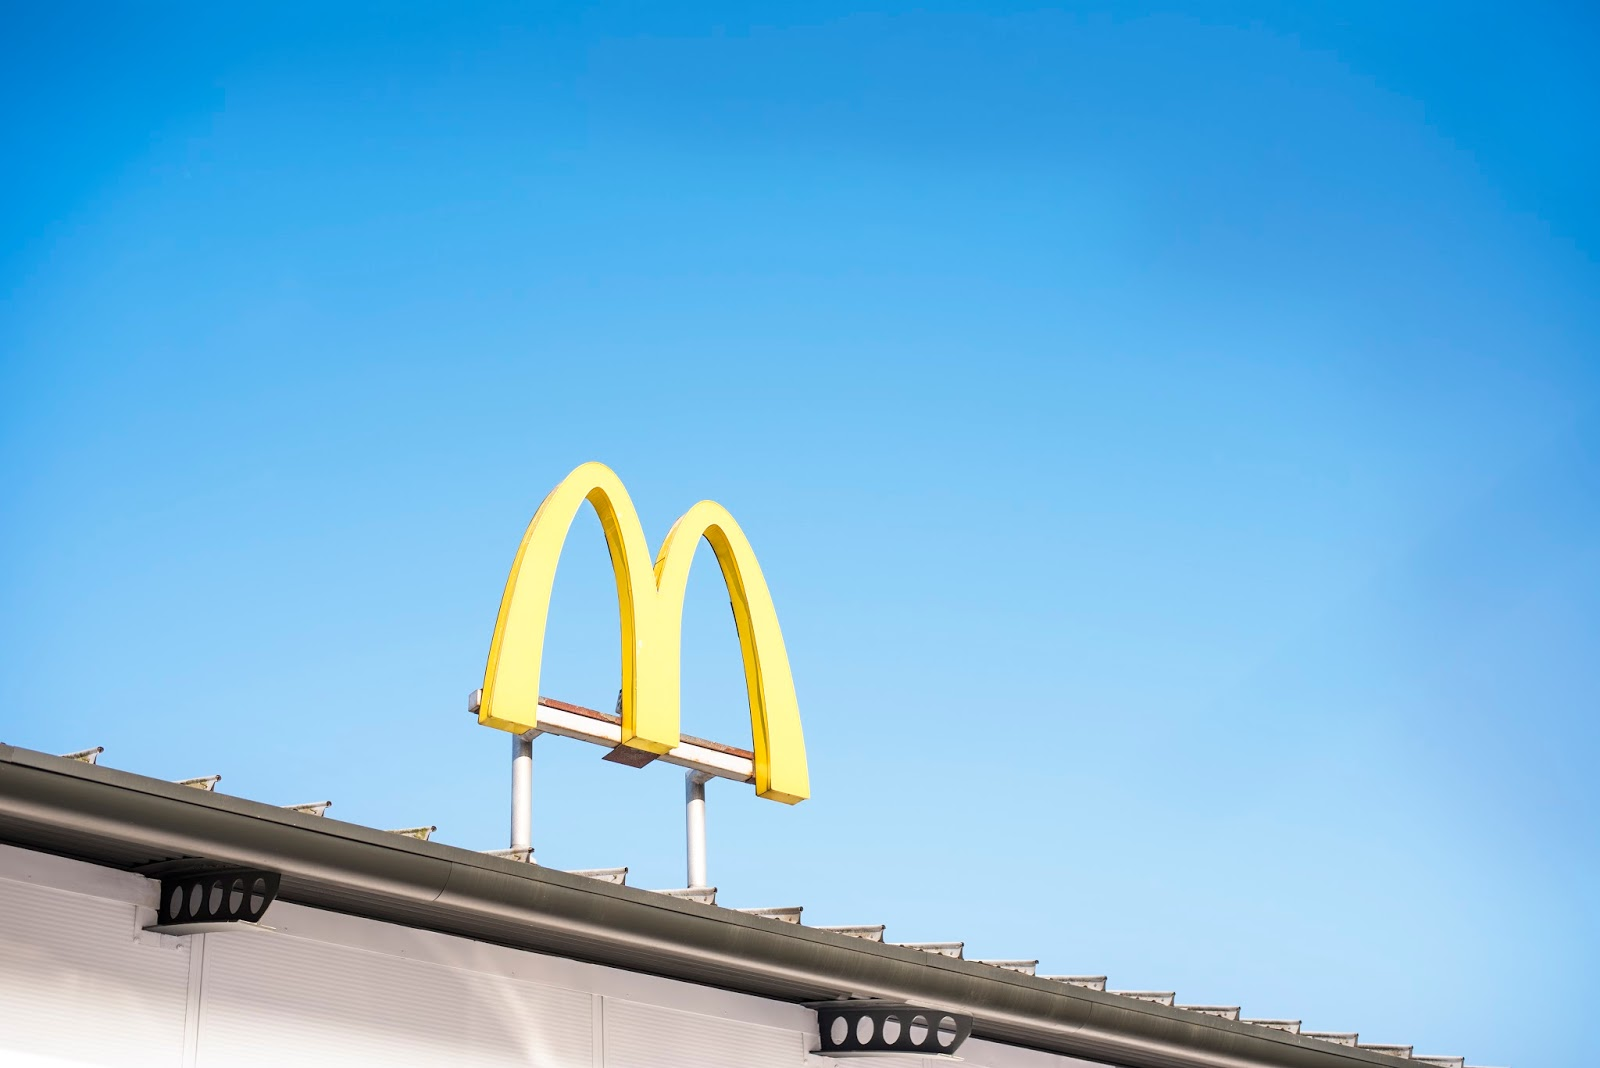 MCDONALD'S: DIGITAL RESTAURANT OF THE FUTURE